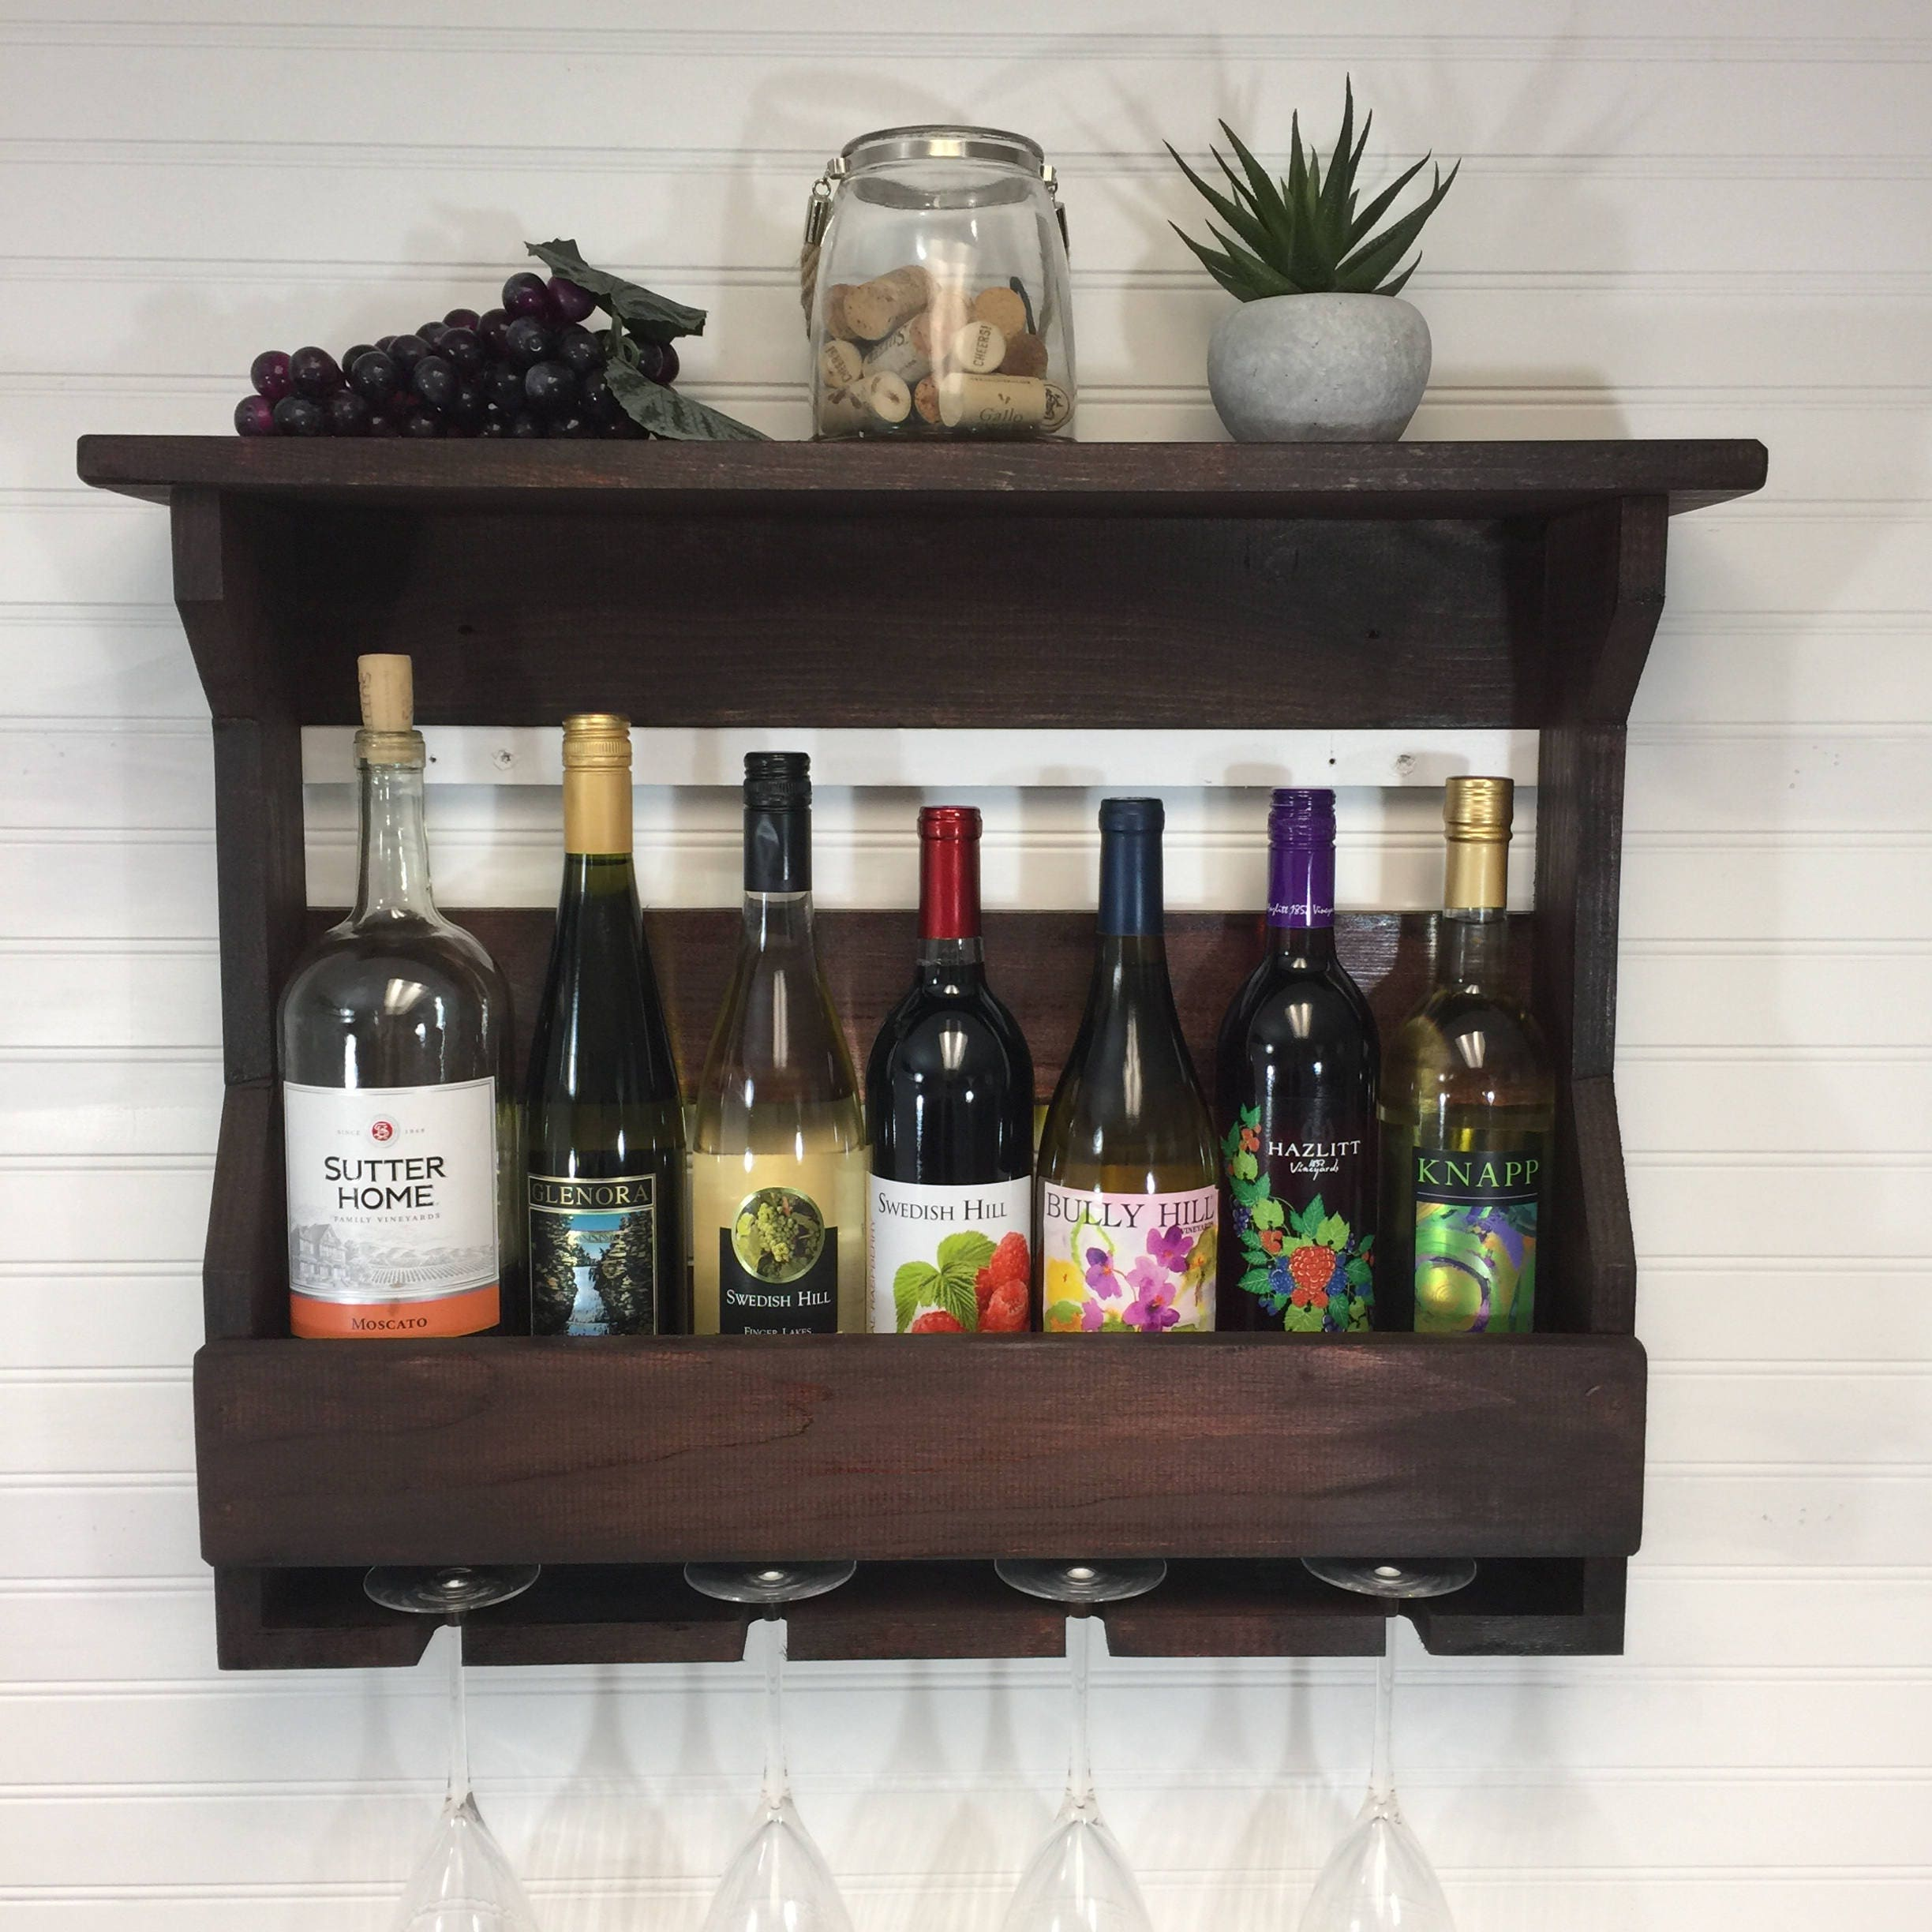 Decorative Wall Wine Rack wooden wine rack | wall mounted wine rack | handmade rustic home